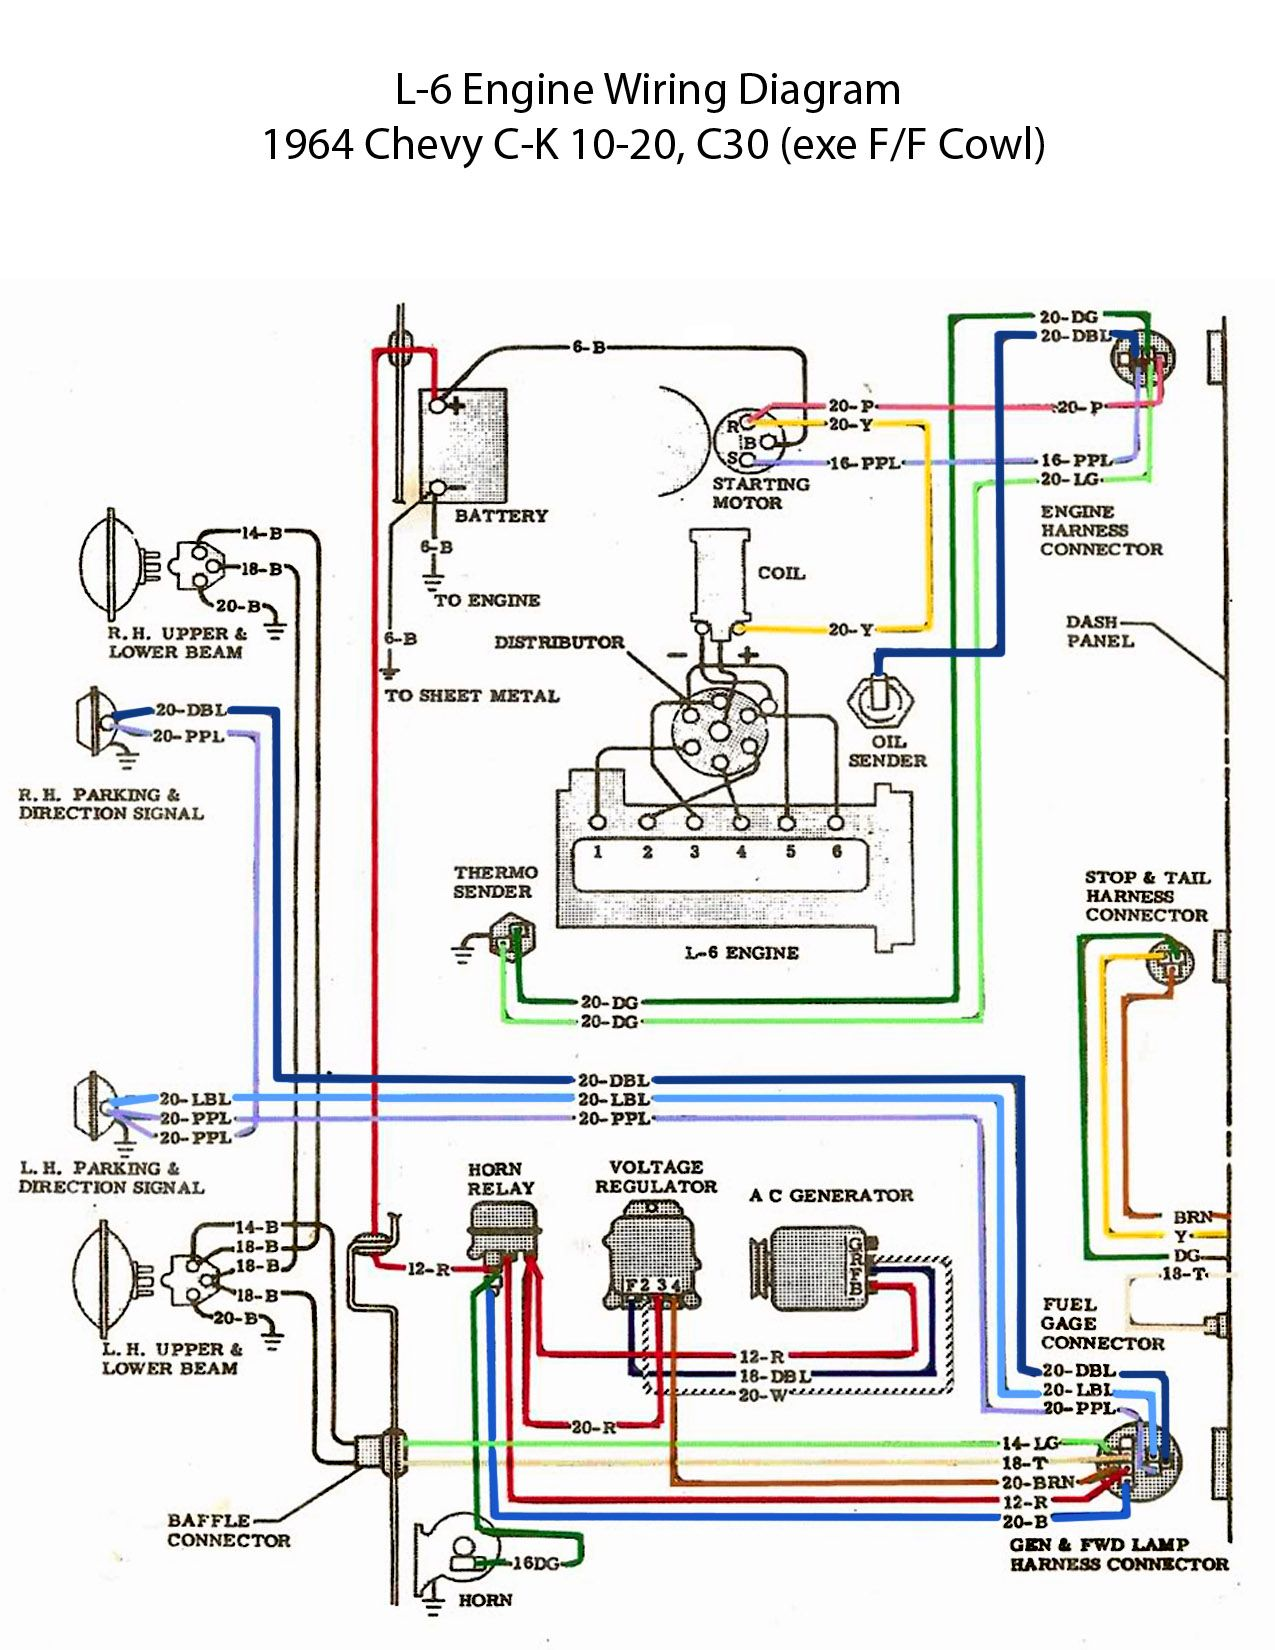 Pleasing Electric L 6 Engine Wiring Diagram 60S Chevy C10 Wiring Wiring Cloud Nuvitbieswglorg